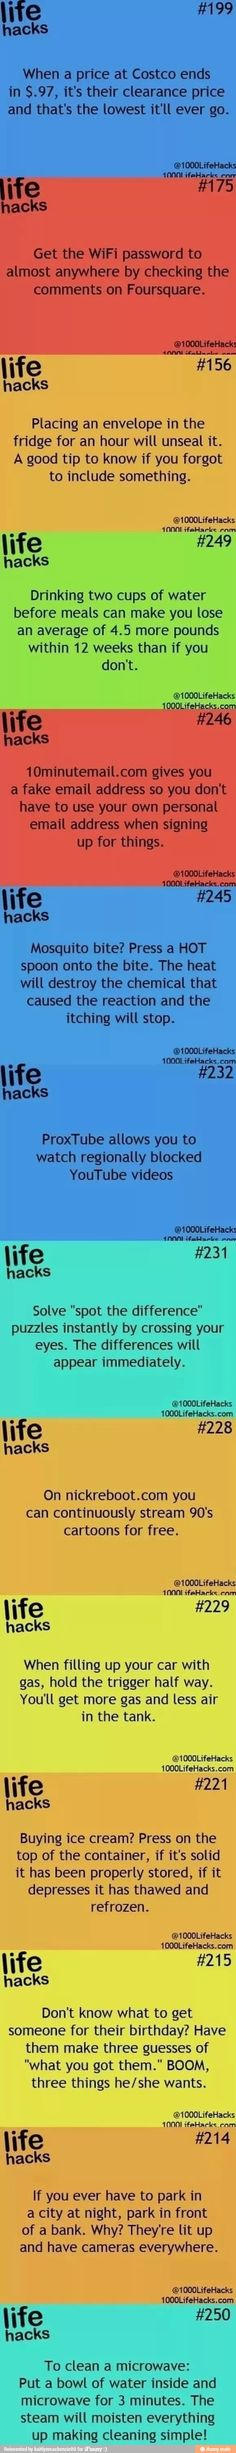 Collection of life hacks